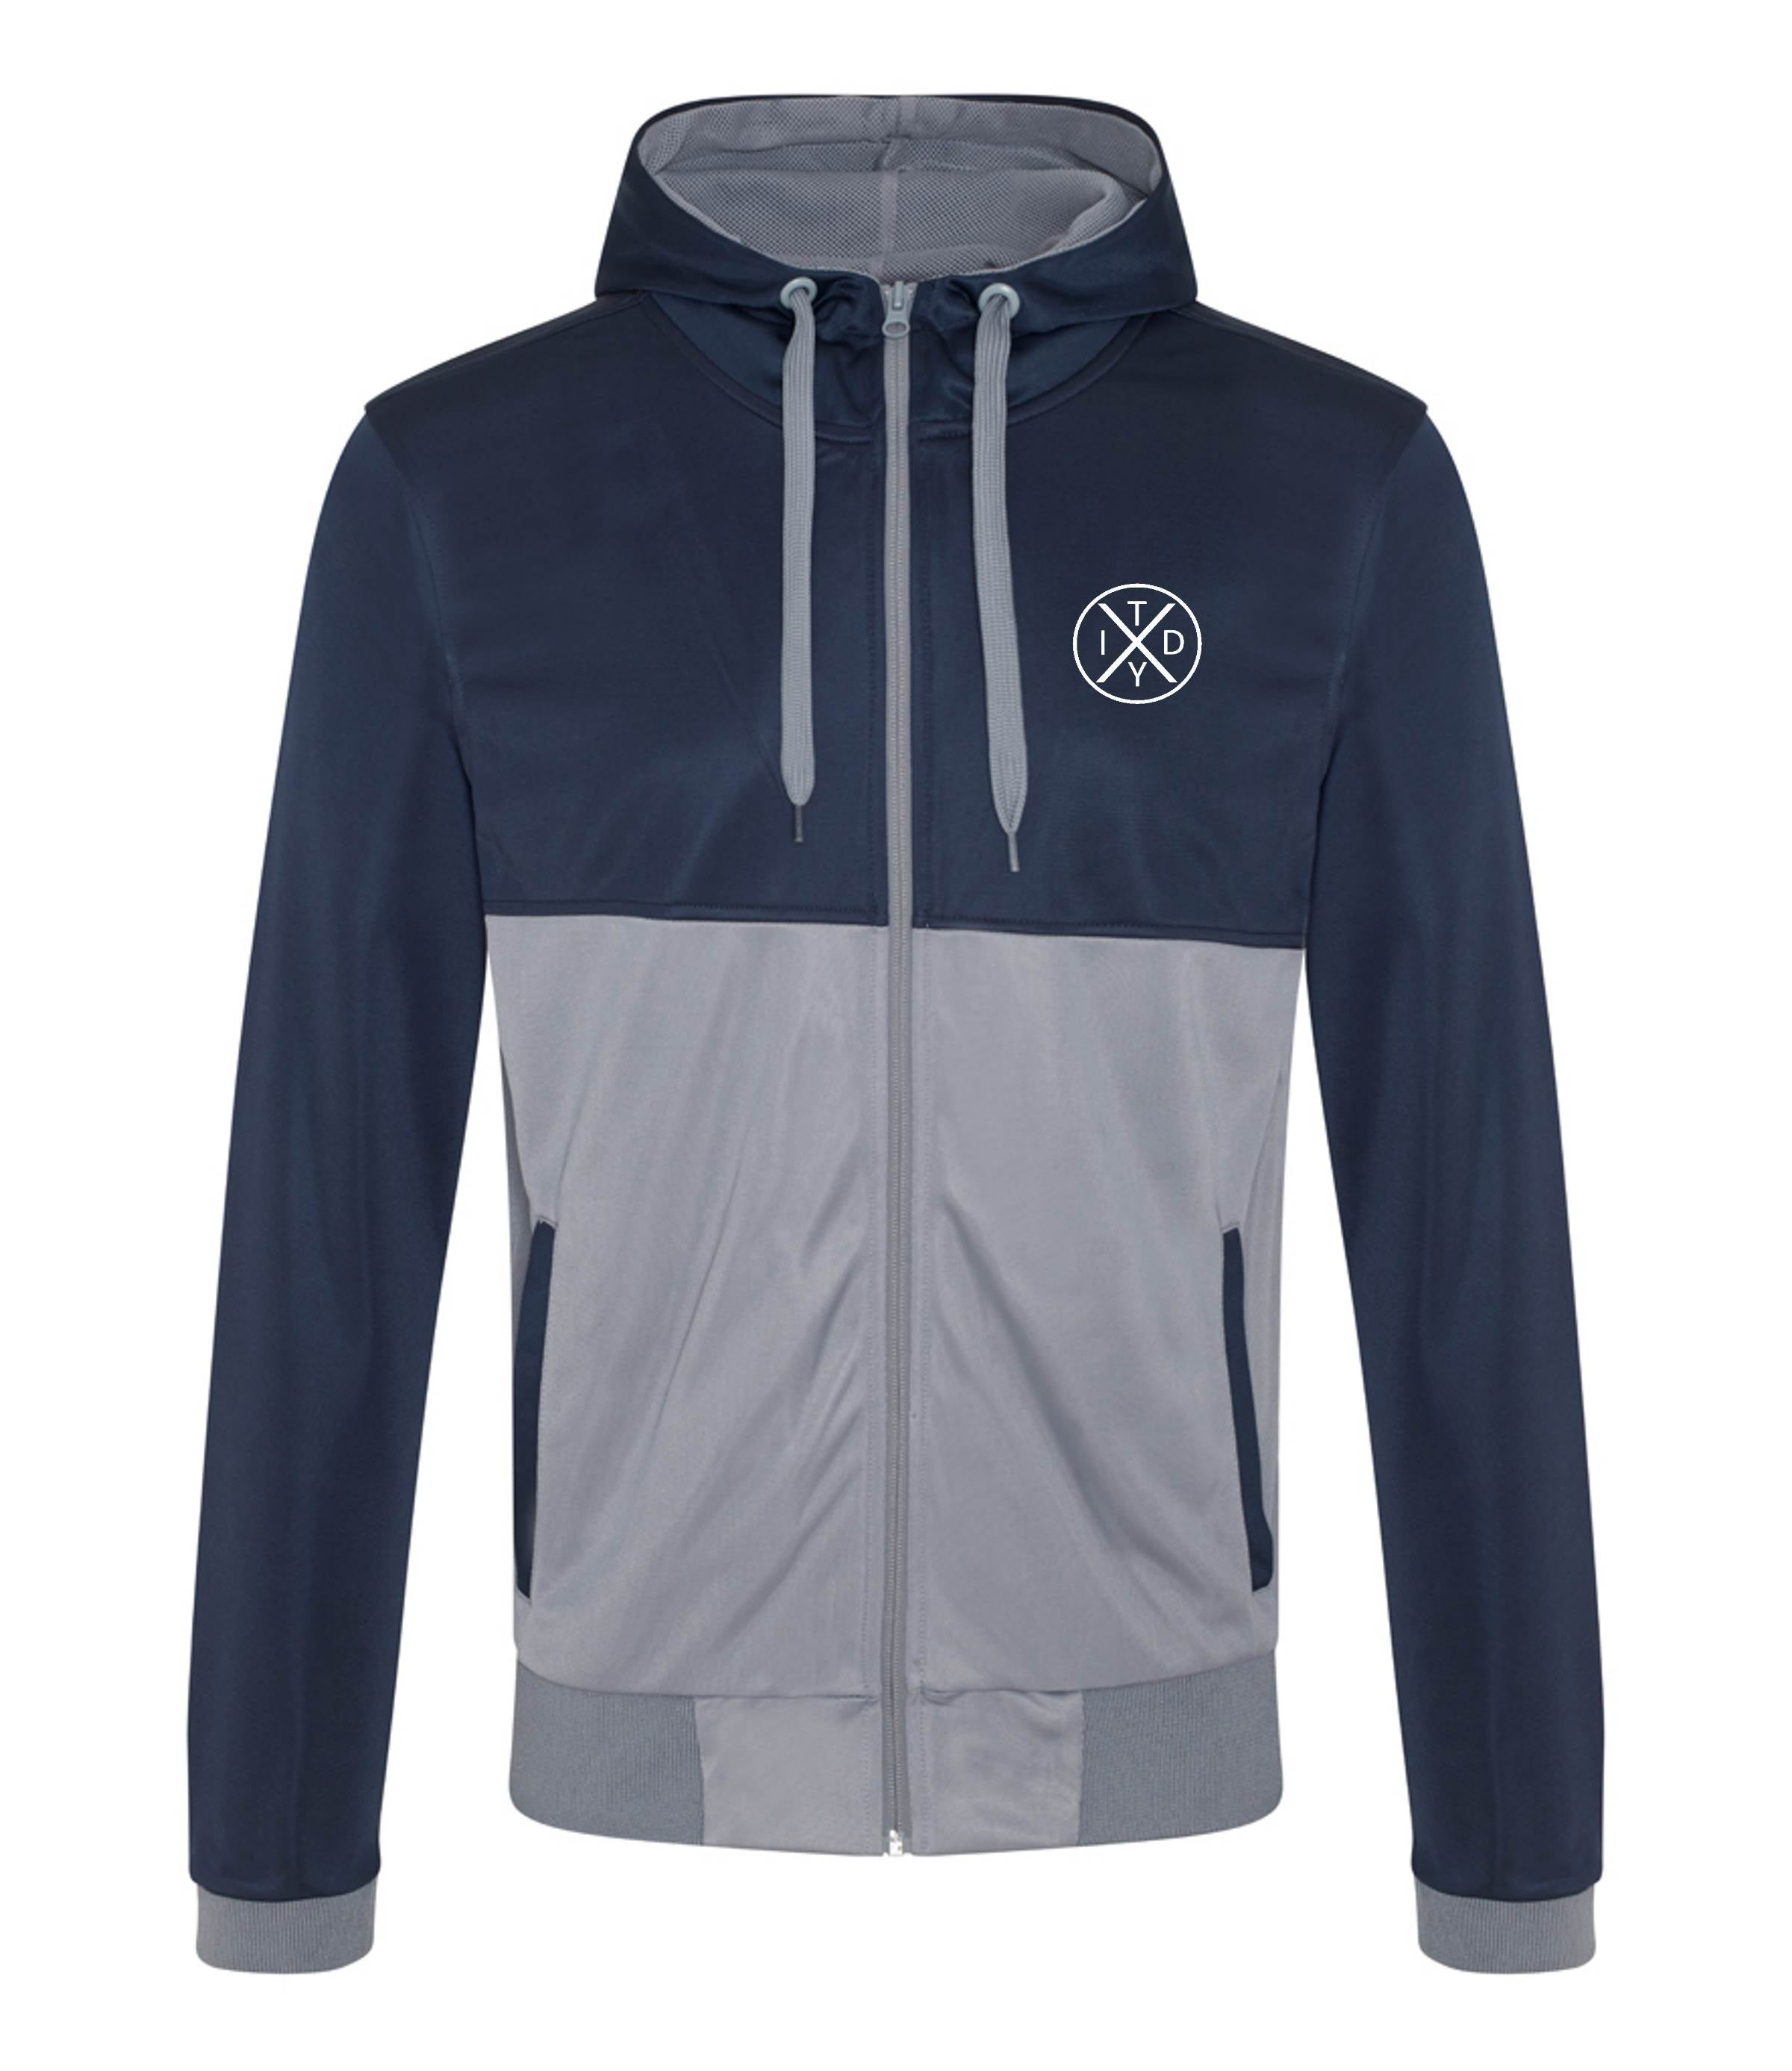 Mens Project IDTY Zip Hoodie (2 Colour Options)